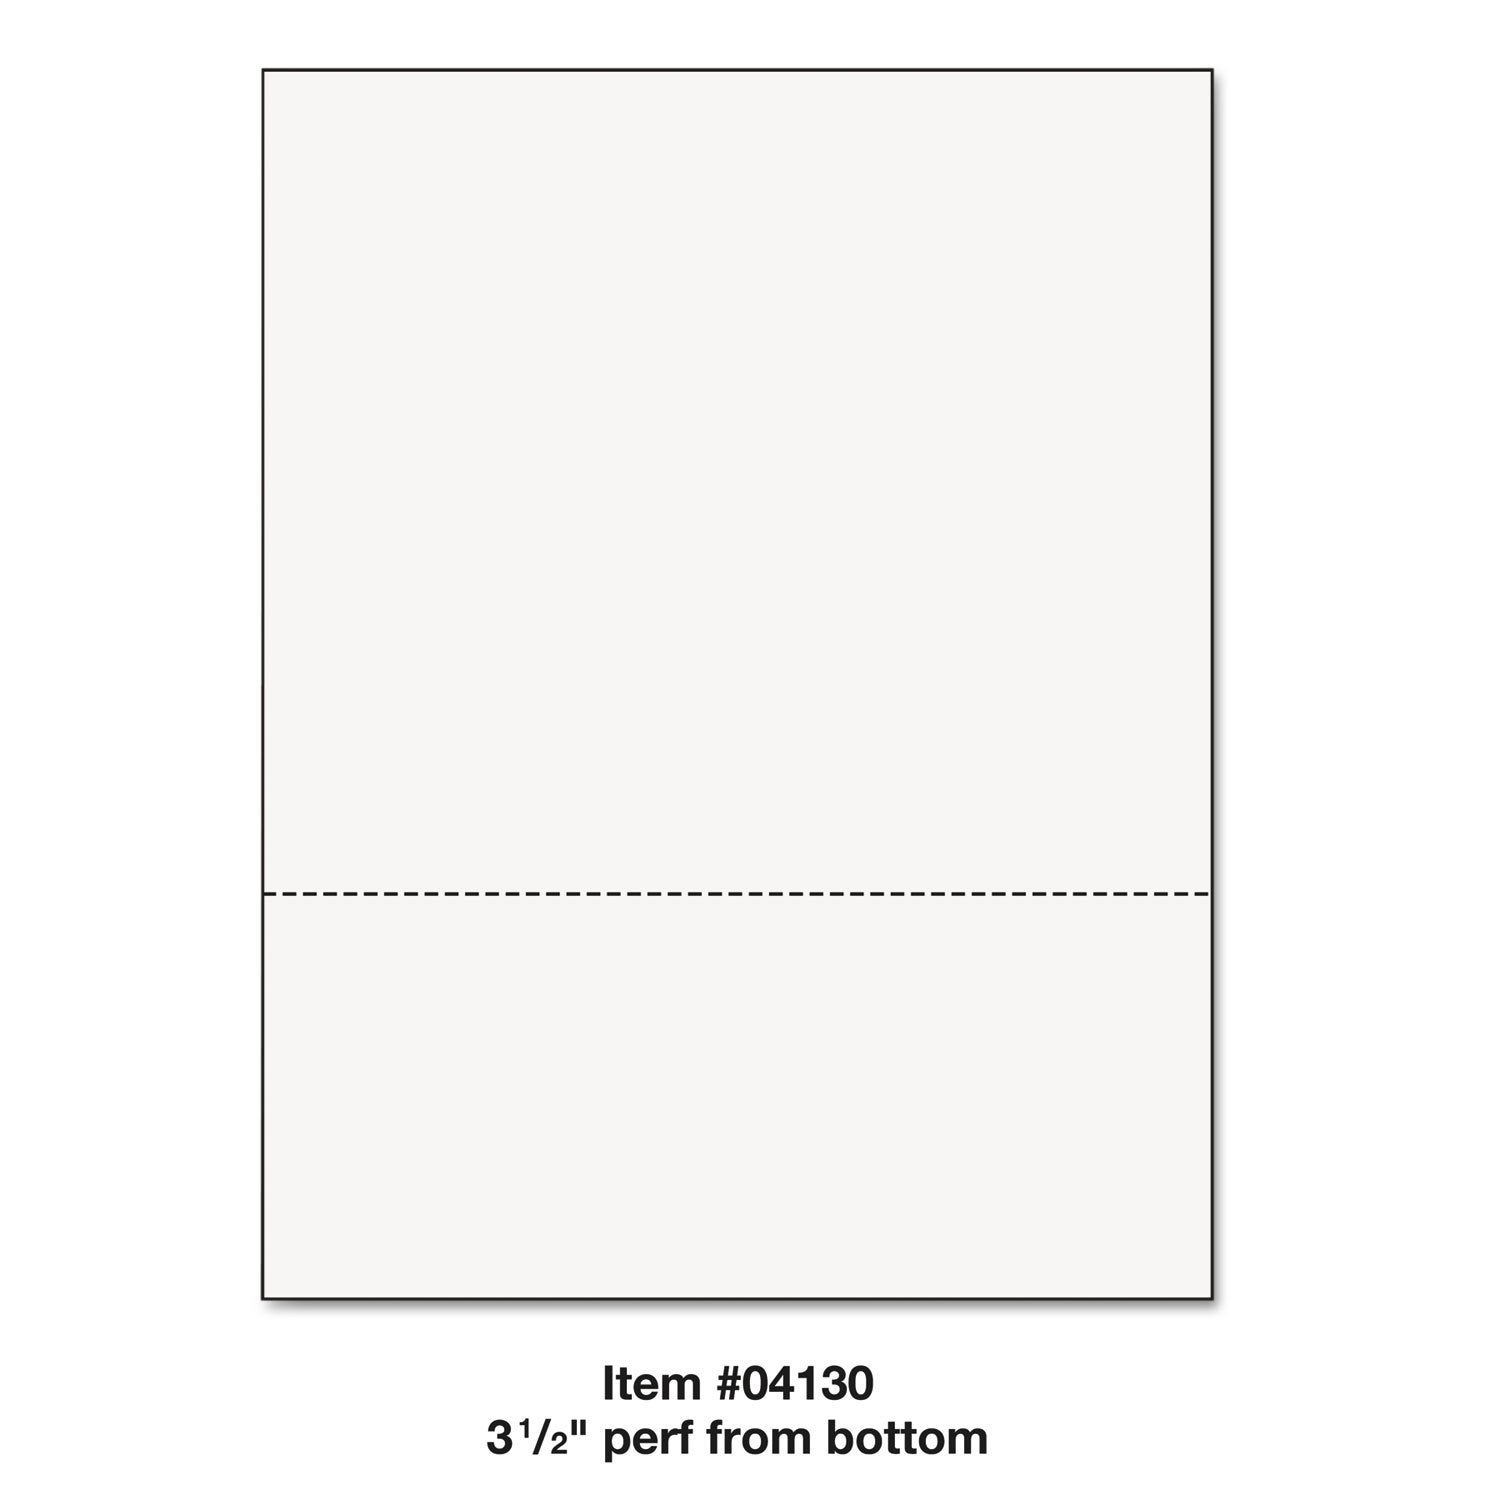 Printworks Professional Office Paper Perforated 3 1/2-inc...